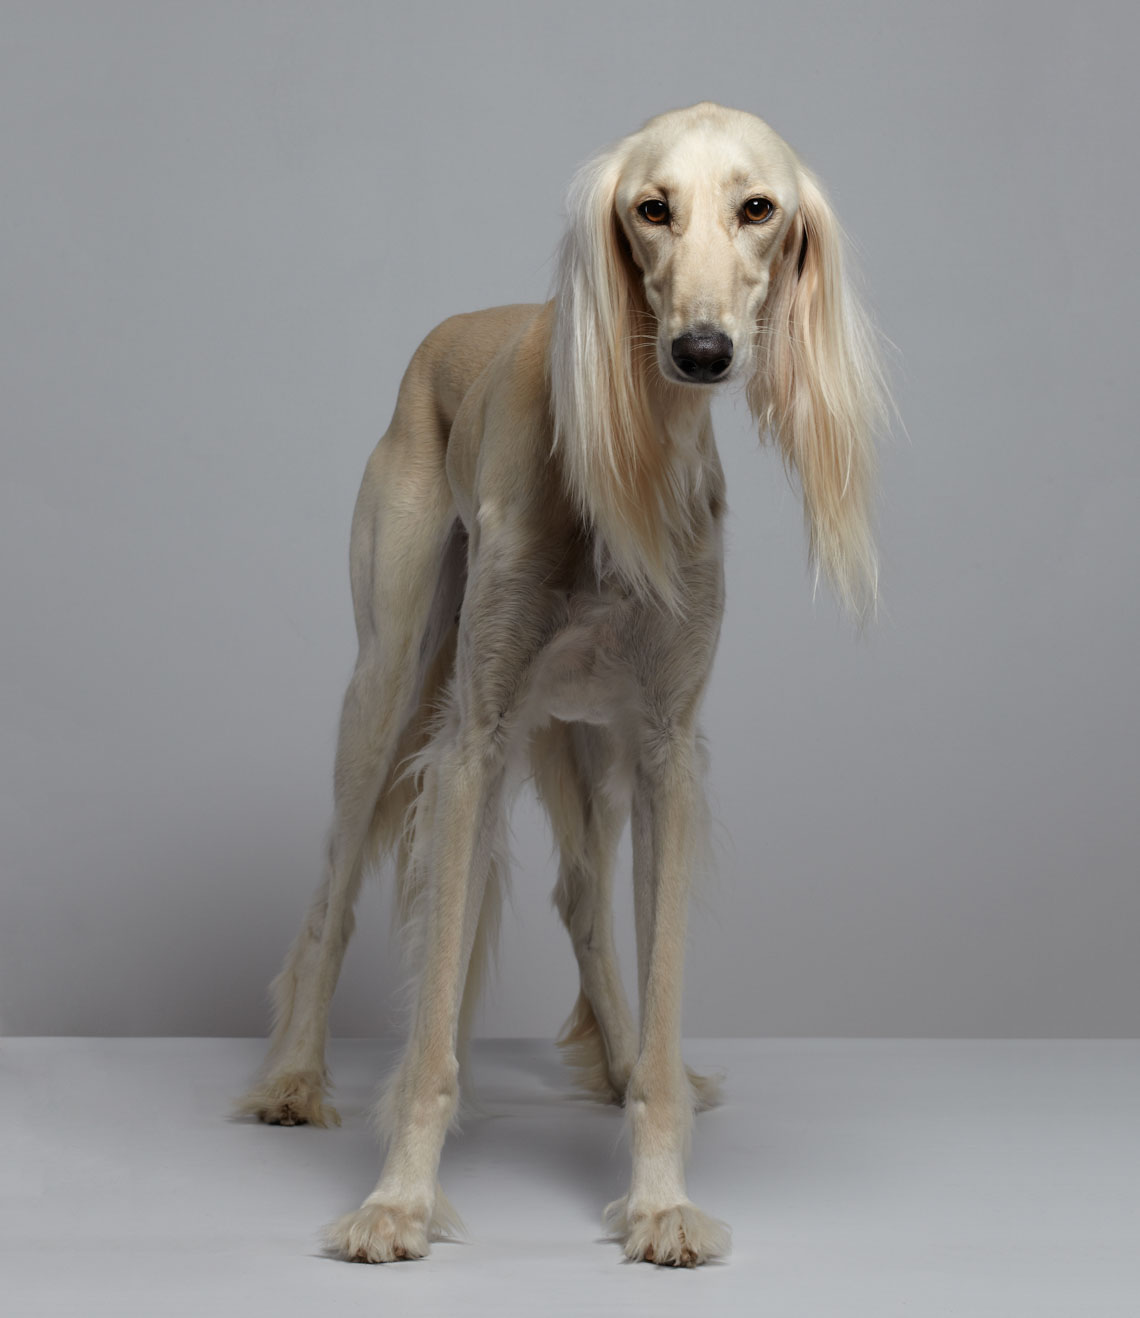 dog pet commercial animal photographer san francisco bay area pet portrait  Arabian saluki